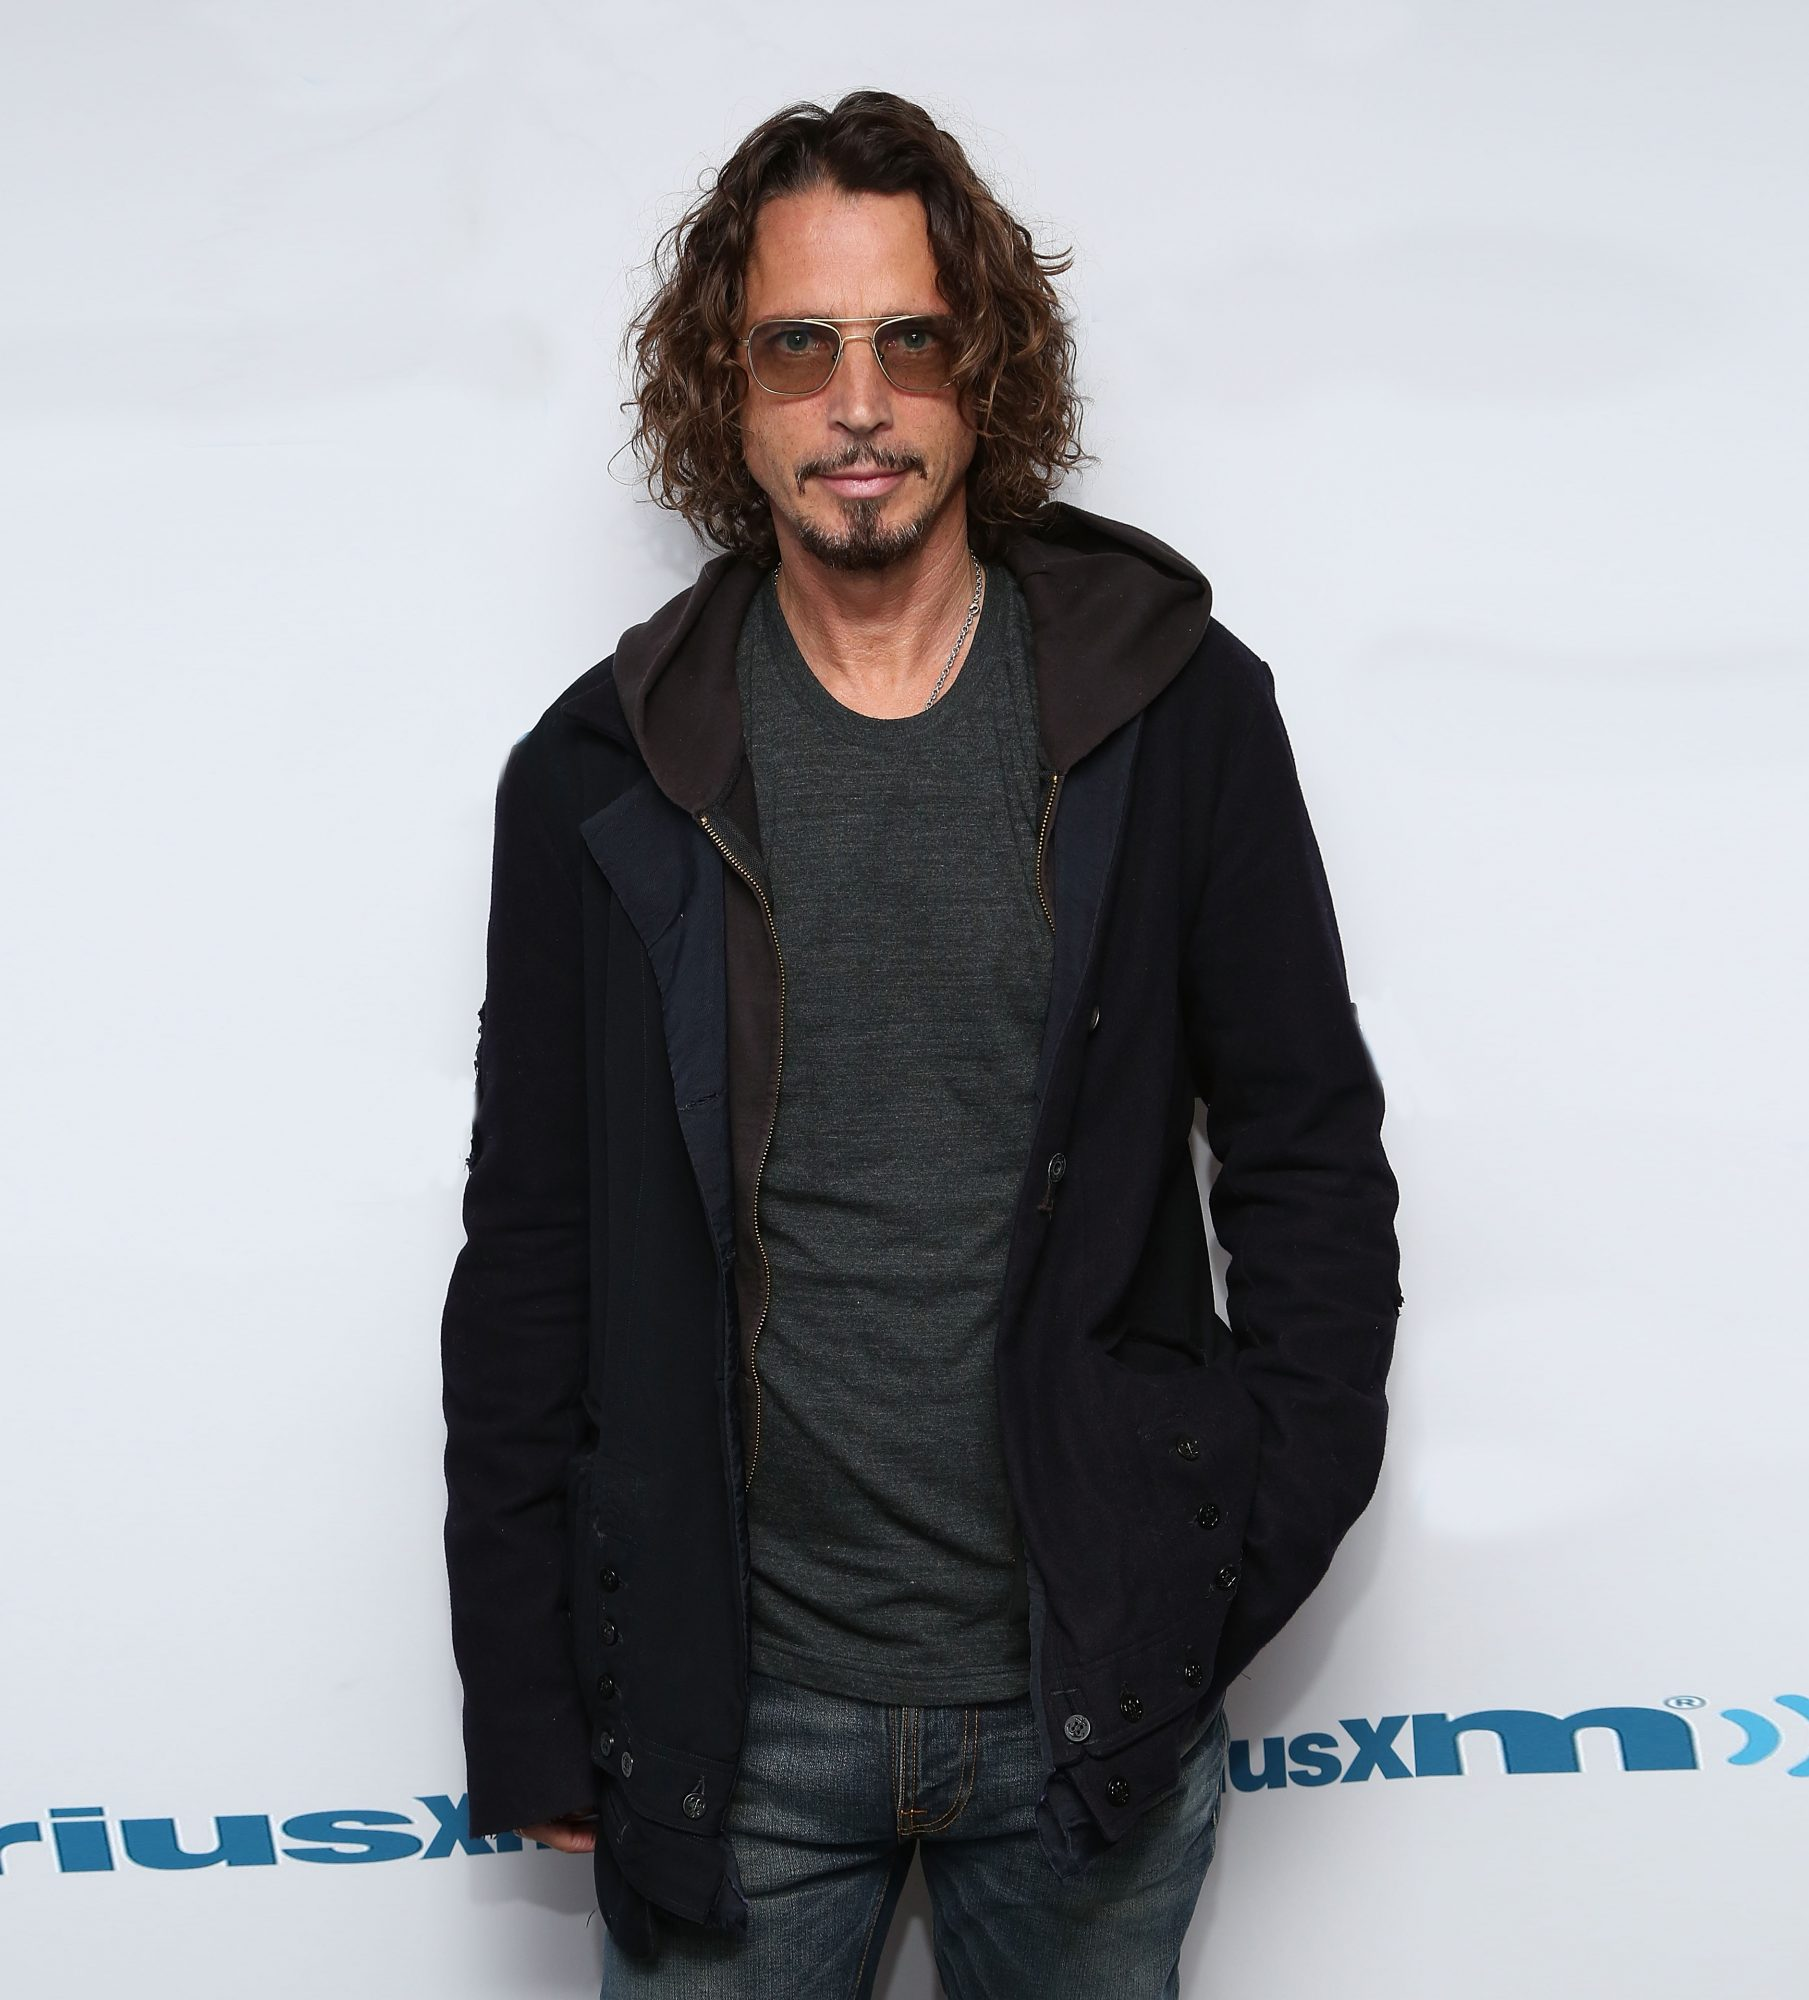 chris-cornell-sunglasses